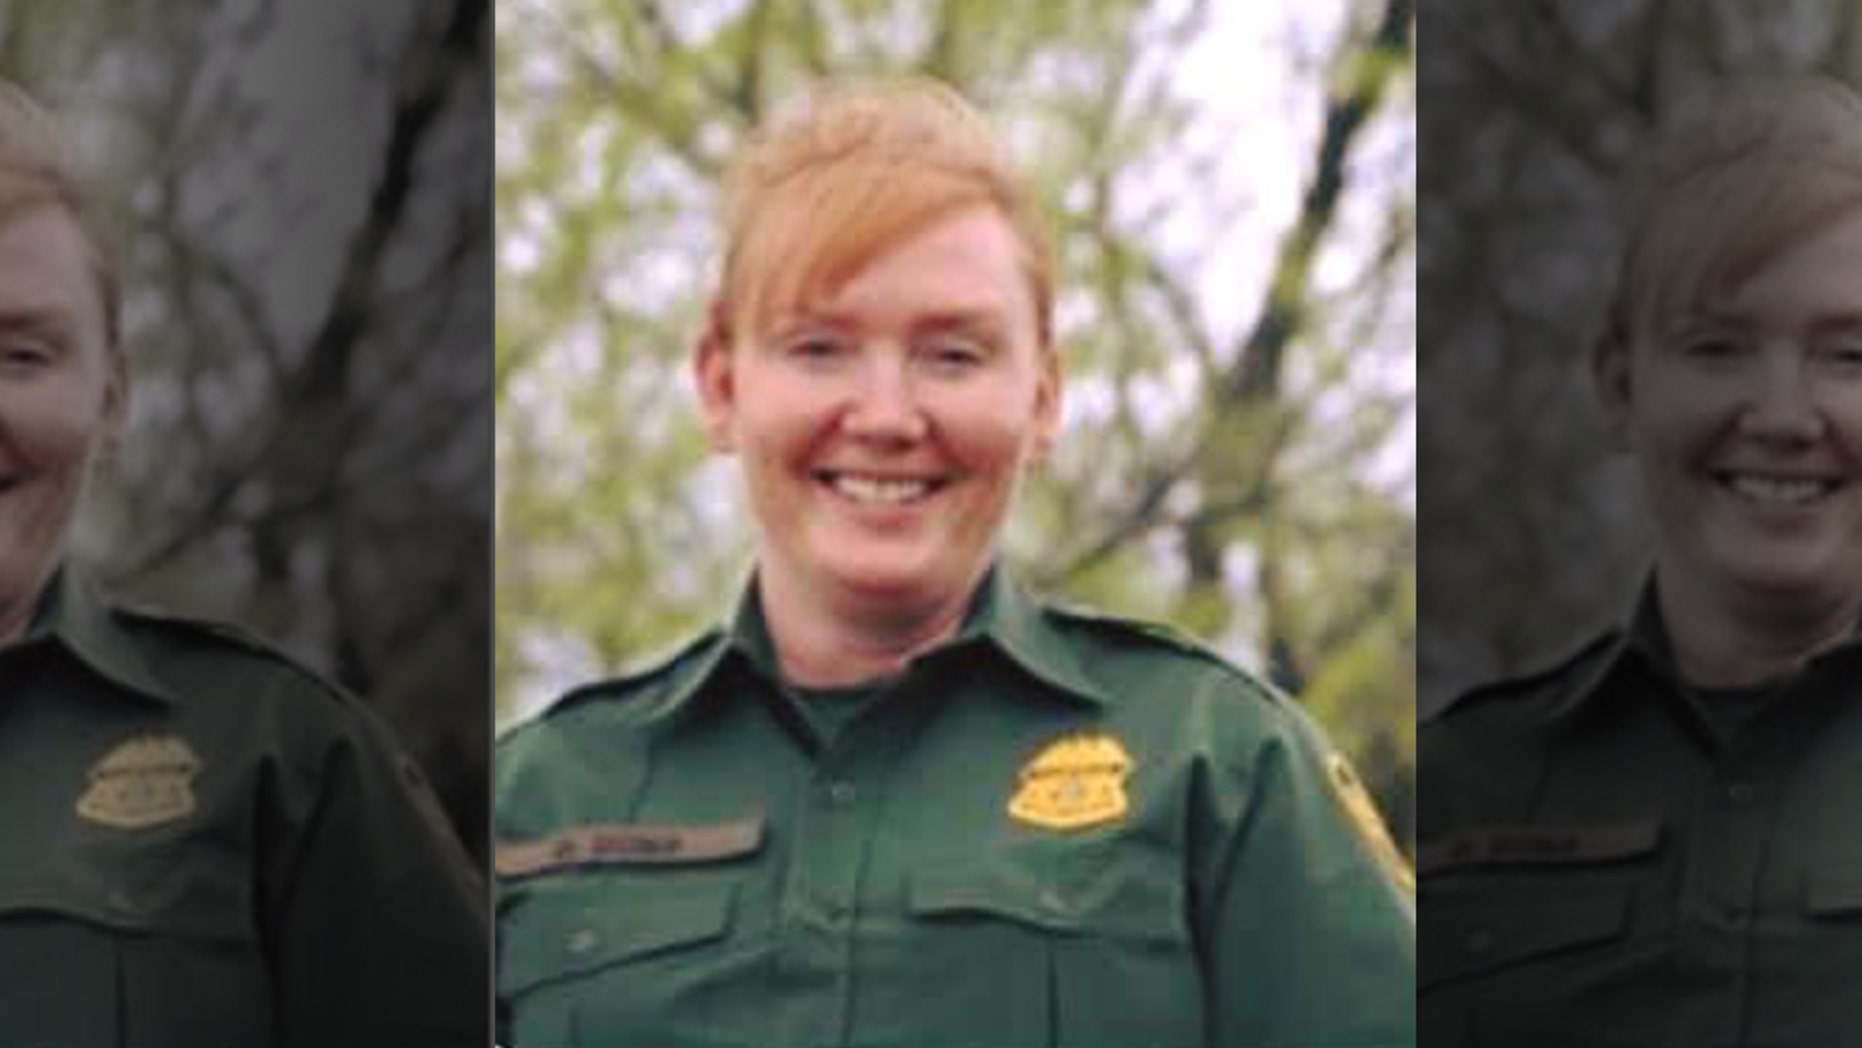 Customs and Border Patrol Agent Donna Doss, 49, was killed Saturday night while on patrol in Abilene, Texas, officials said.